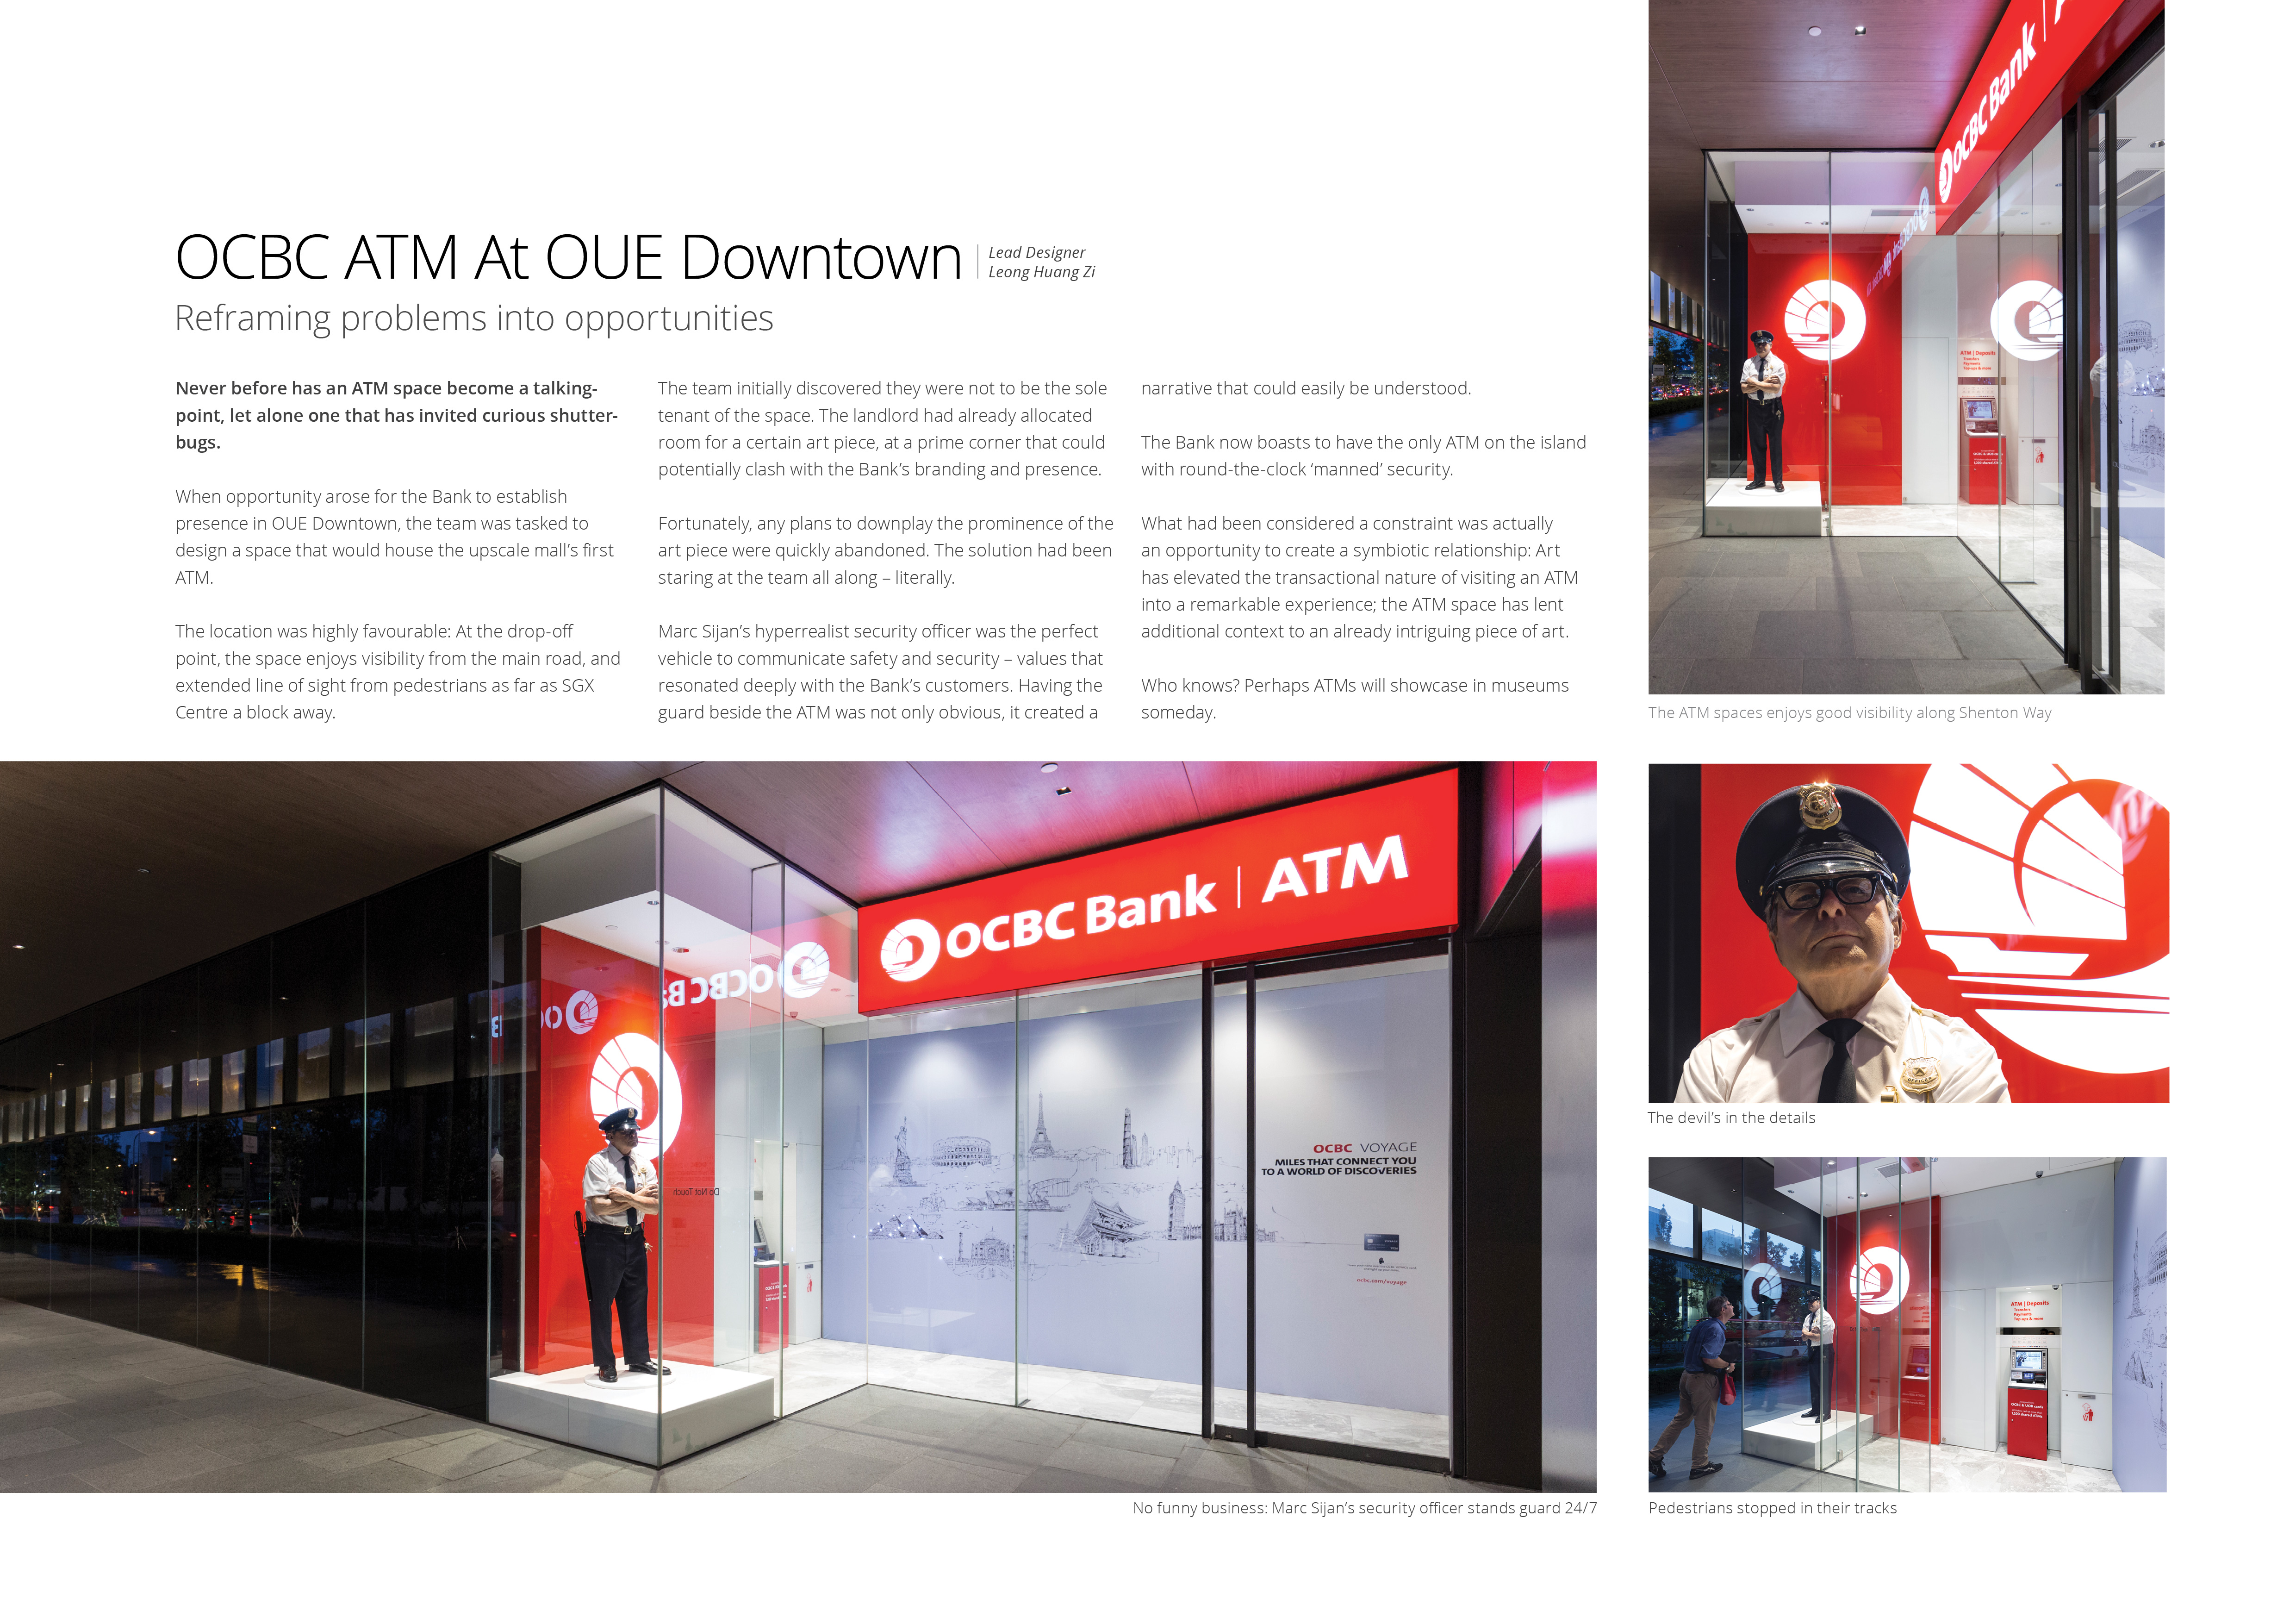 OCBC ATM At OUE Downtown